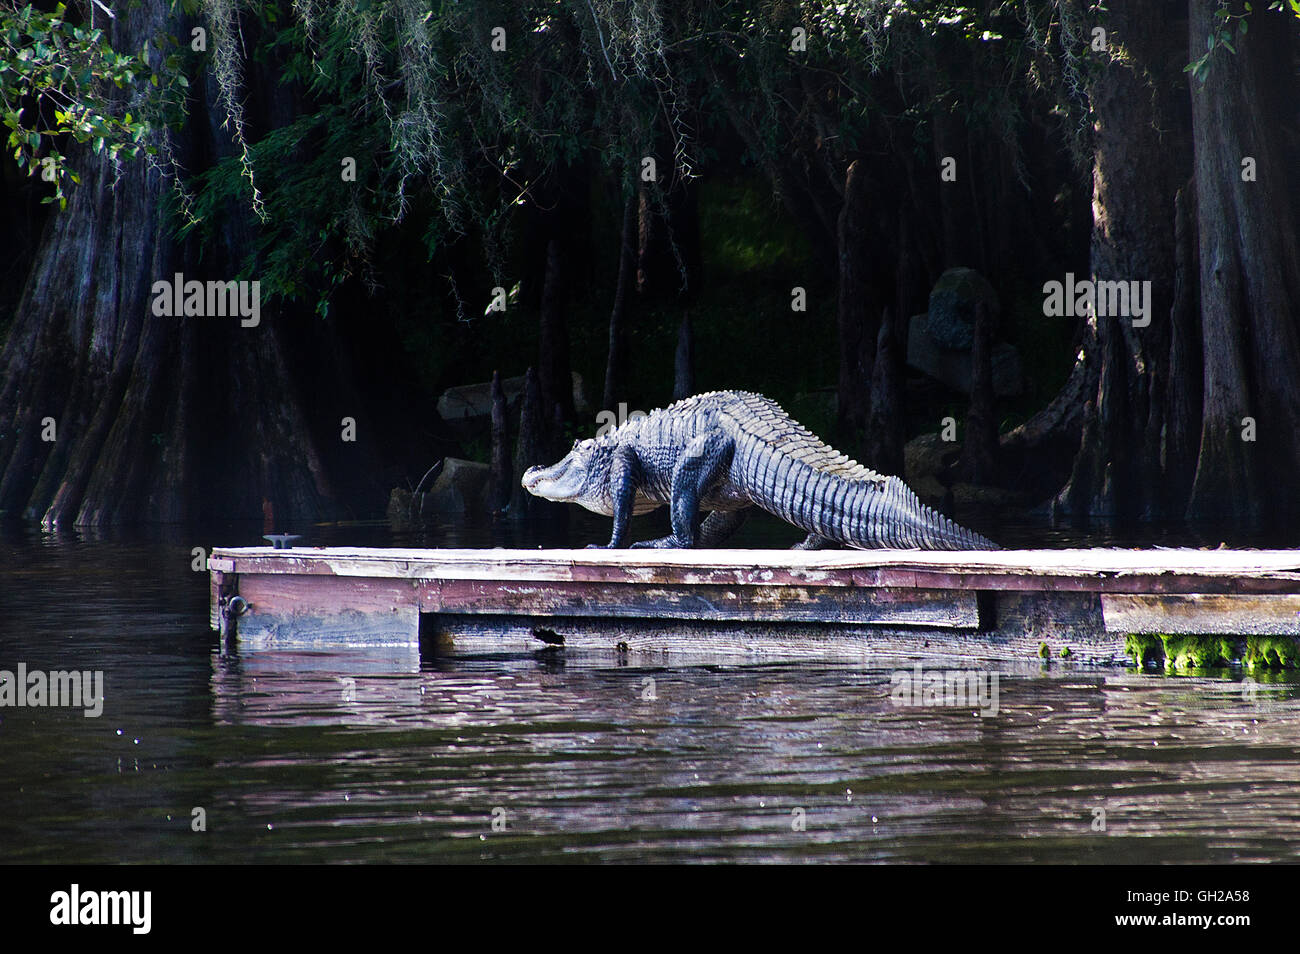 Giant American Alligator walking off a floating dock along the Suwanee River in Central Florida - Stock Image